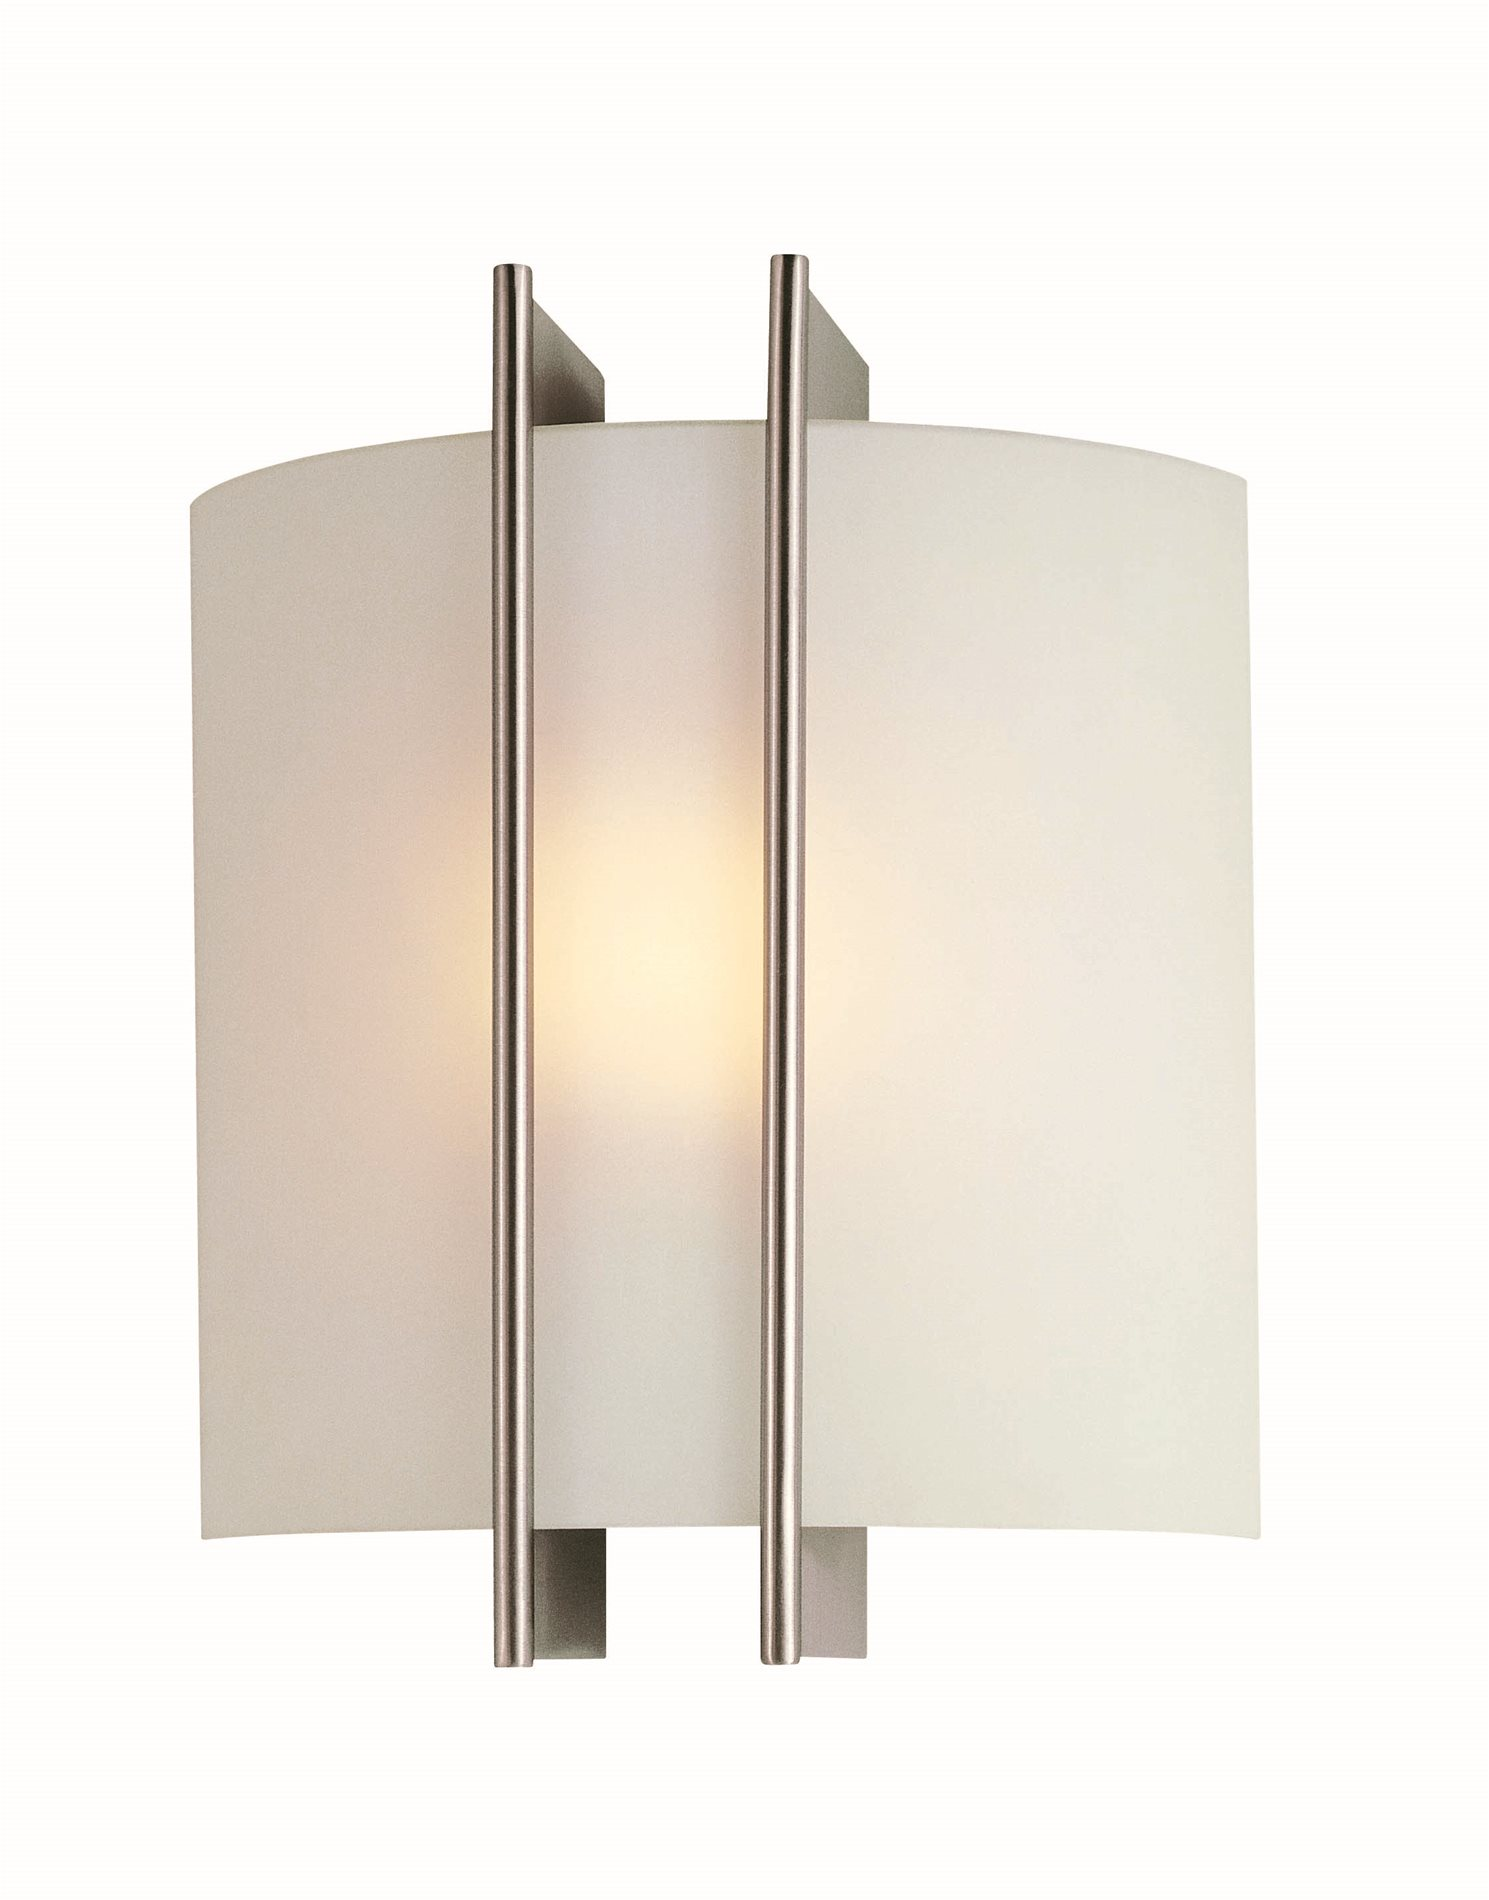 sconce beautiful lamps sconces room modern living wall lighting